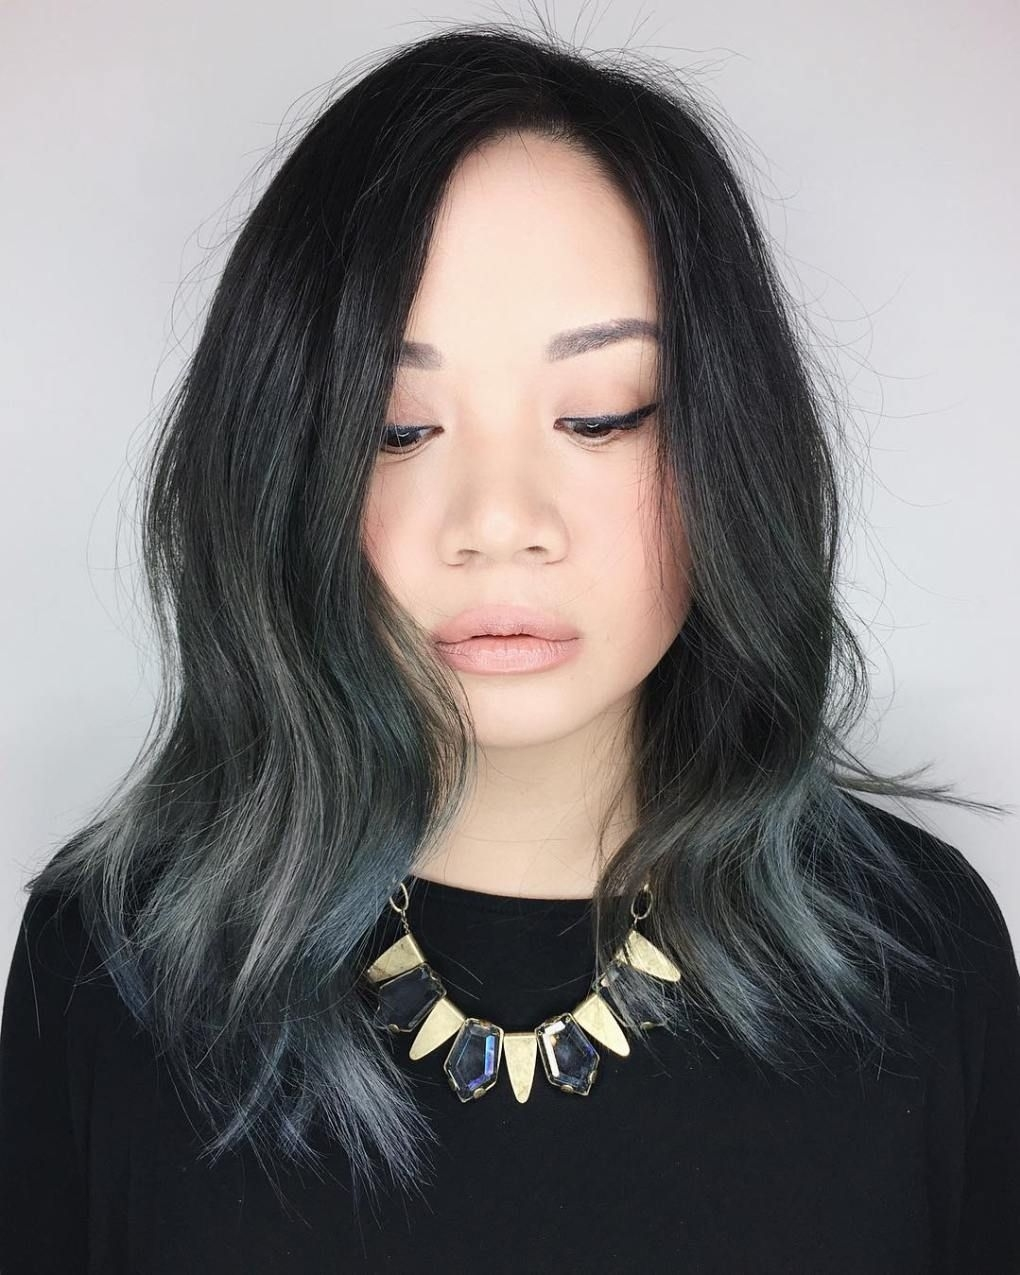 30 Modern Asian Hairstyles For Women And Girls   Hair   Asian Hair throughout Premier Asian Hairstyles Thin Hair